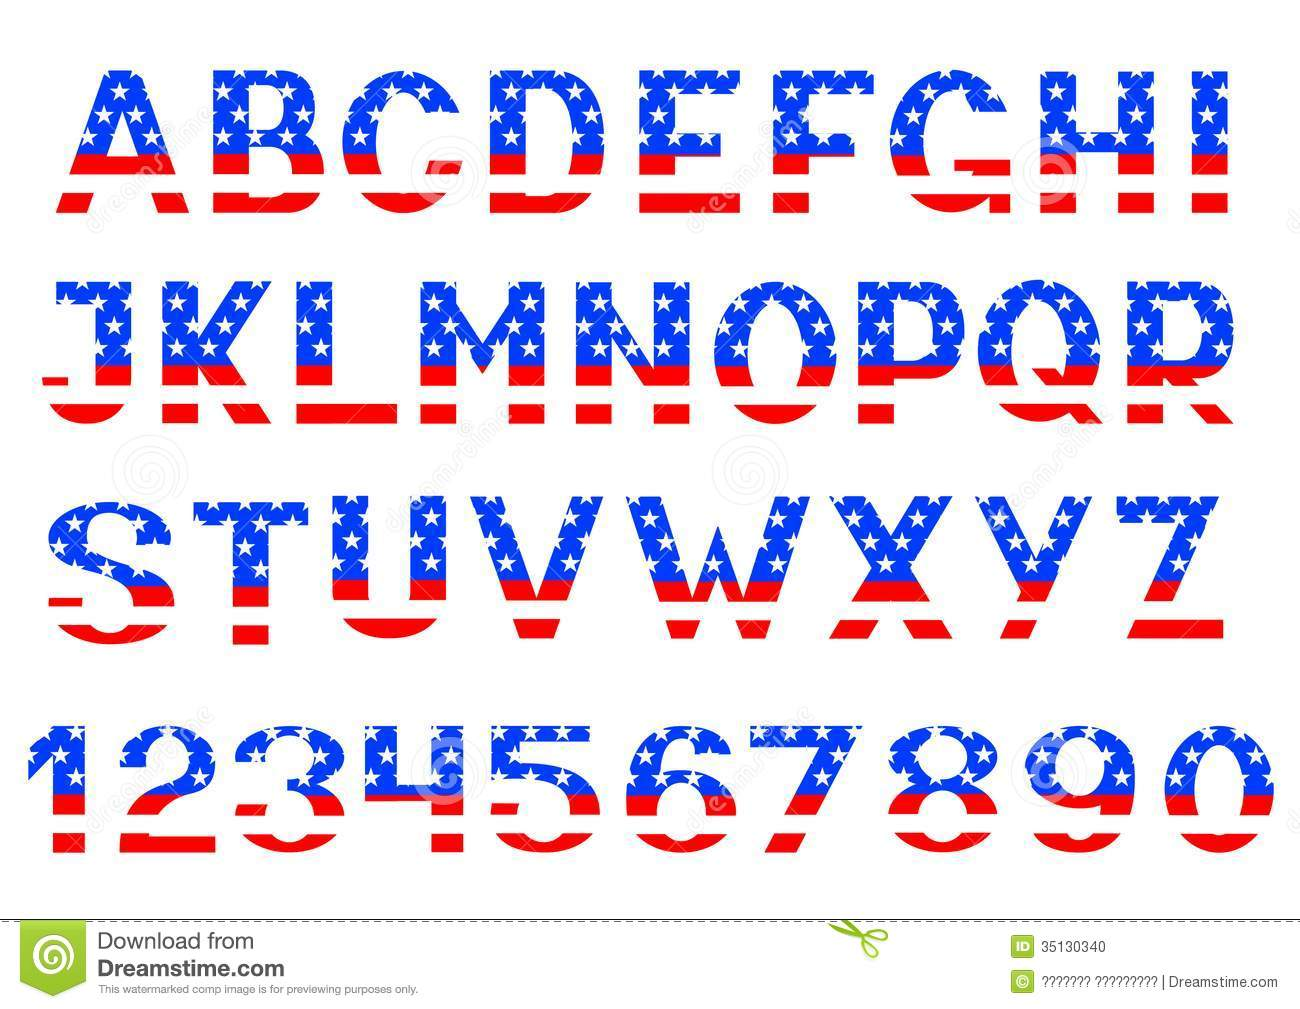 Letters and numbers alphabet of American flag.